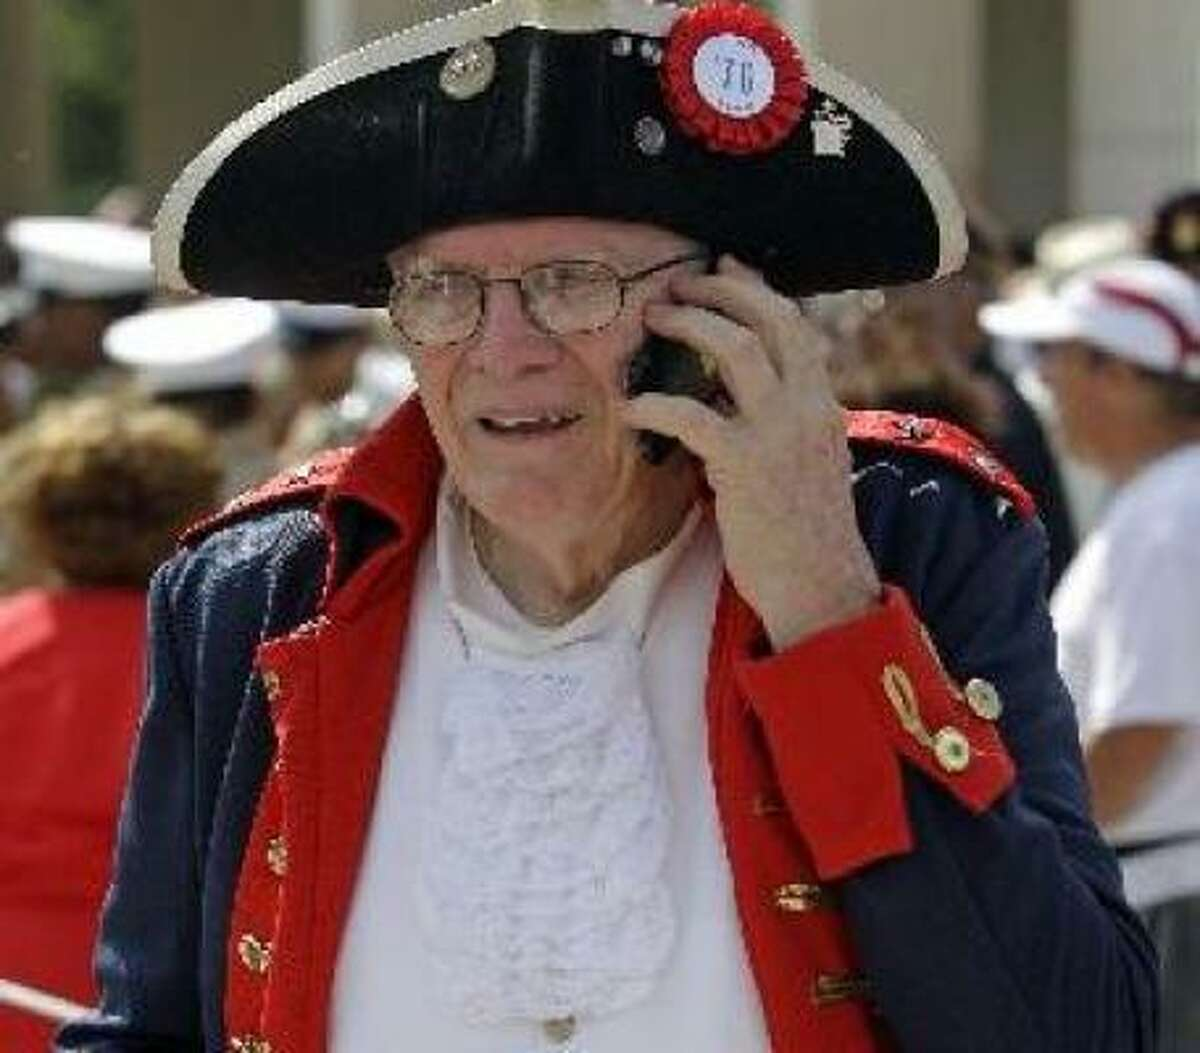 Terry McKee of Tomball with the National Sojouners Houston Chapter 513 takes a break from a parade in Houston on Monday.